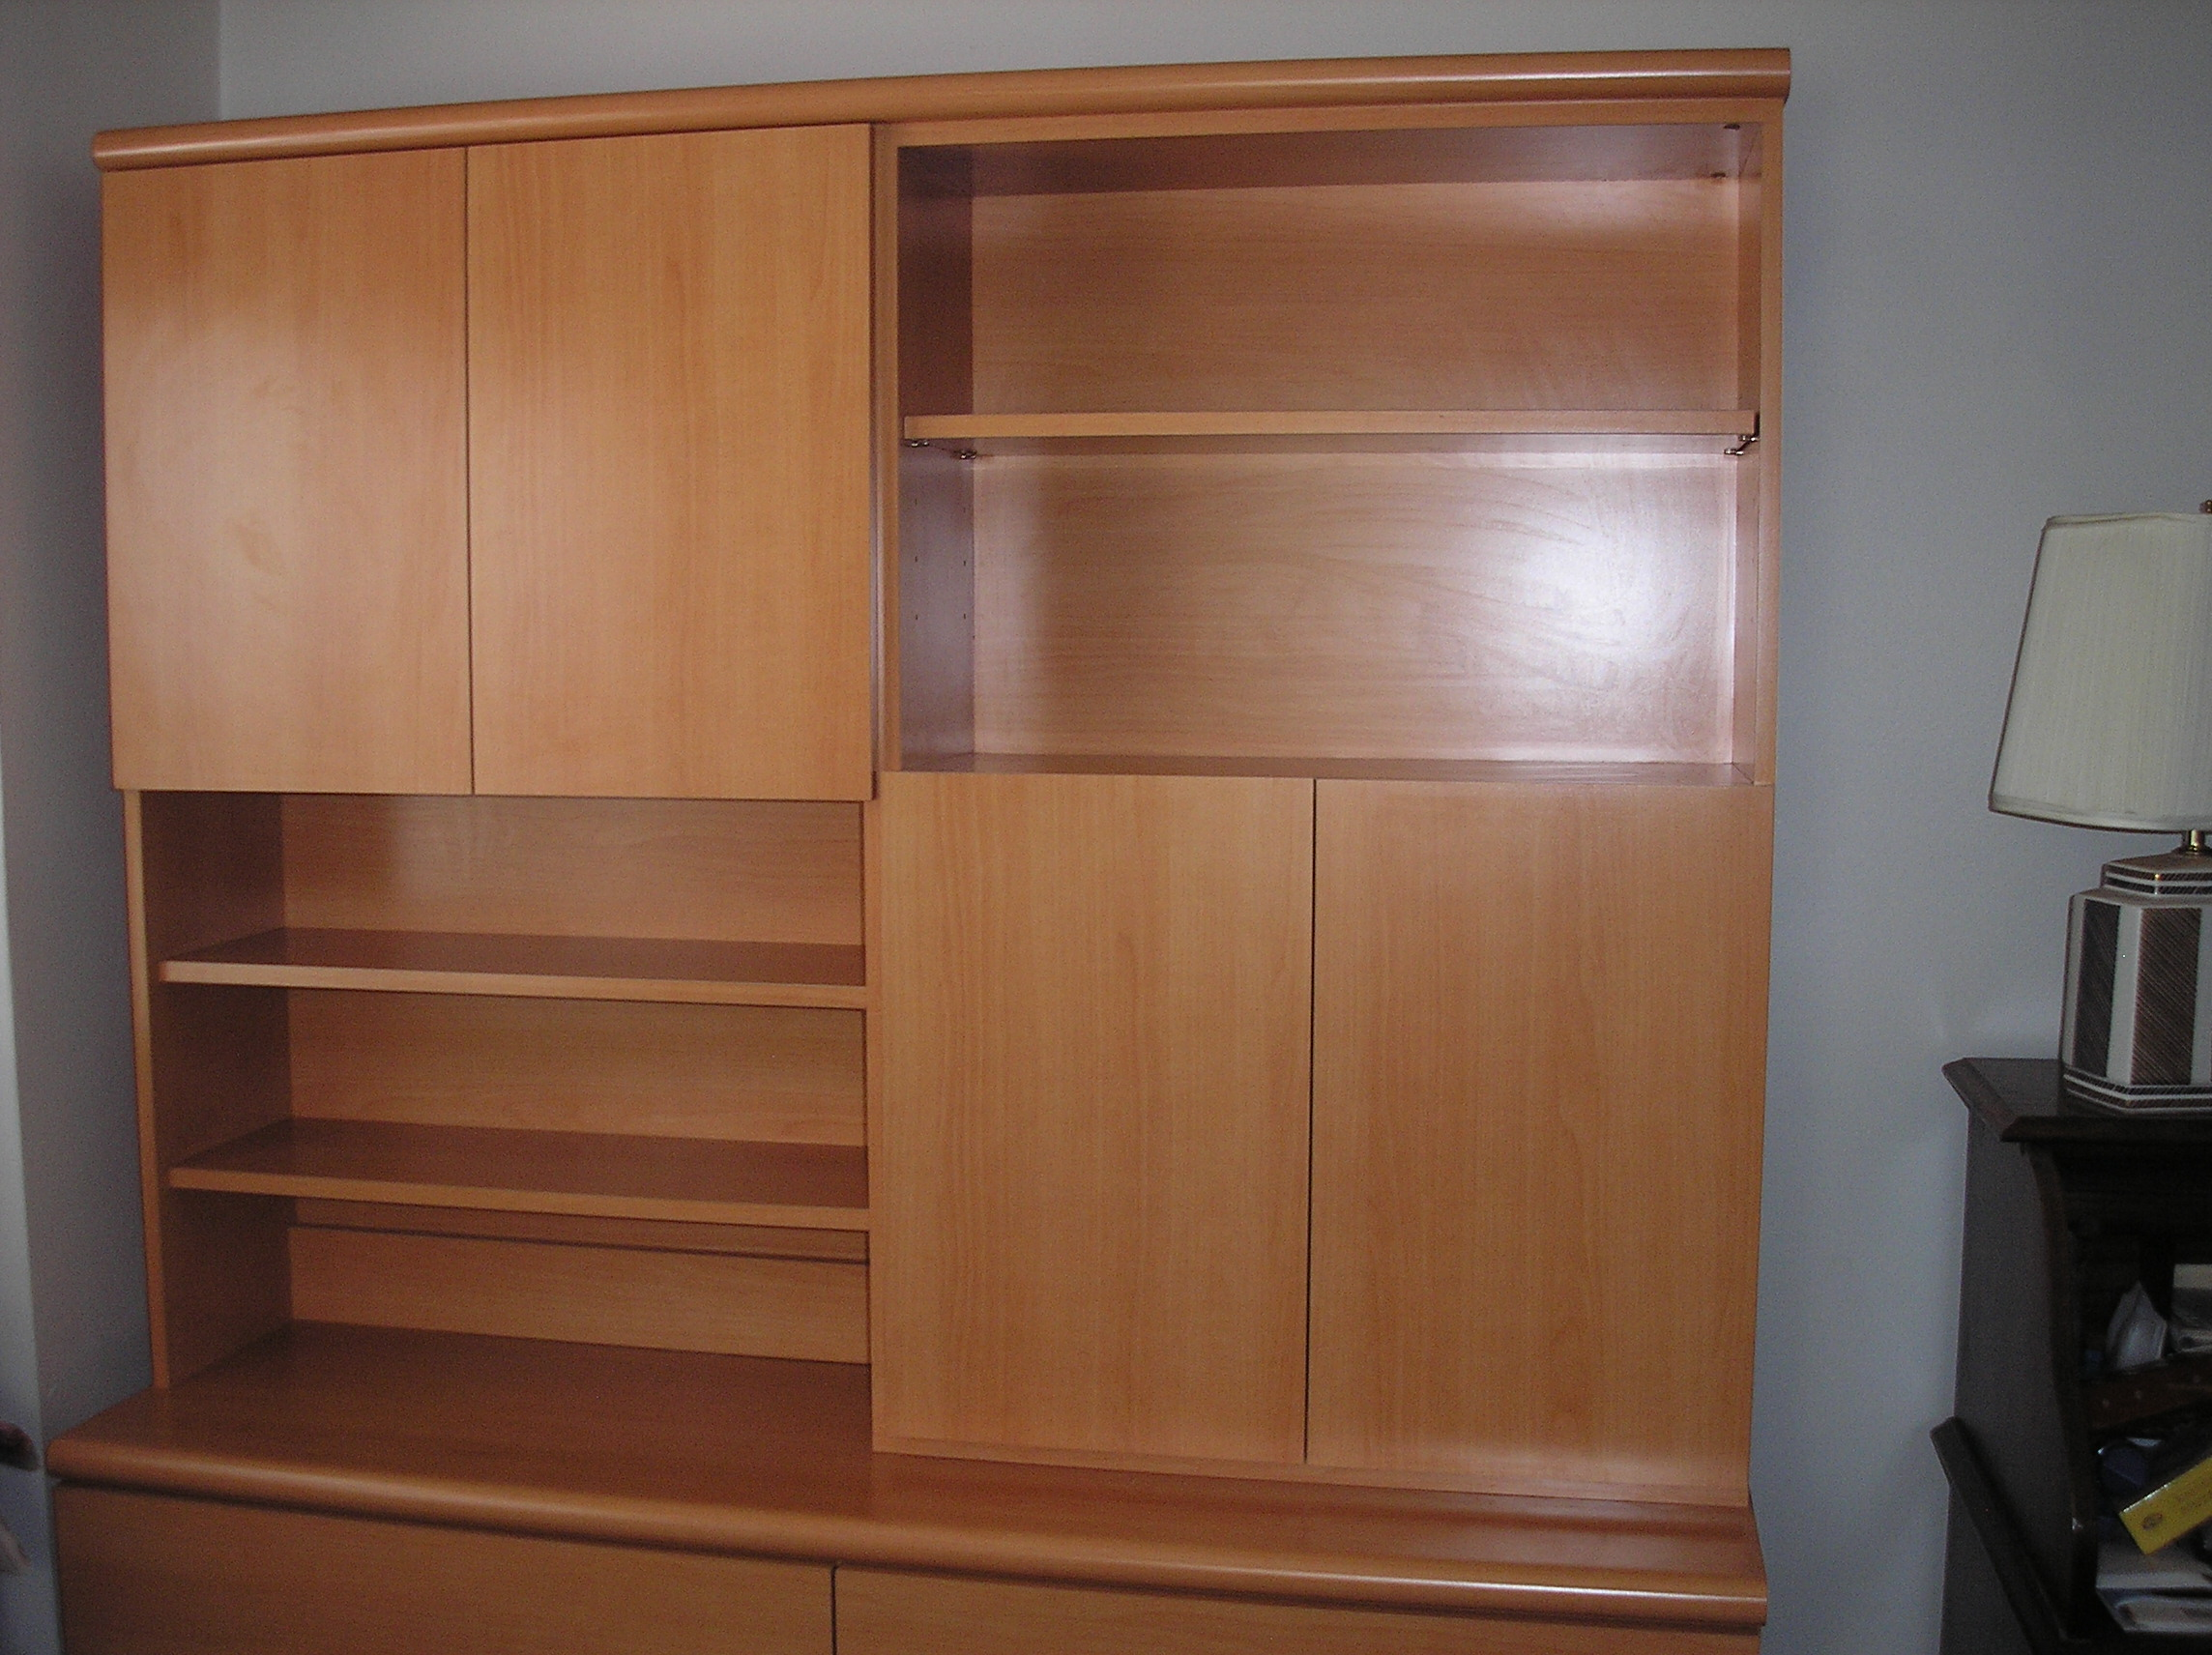 Attirant Mica Furniture, Mica Furniture, Commercial, Residential, Ny, Nj, Pa